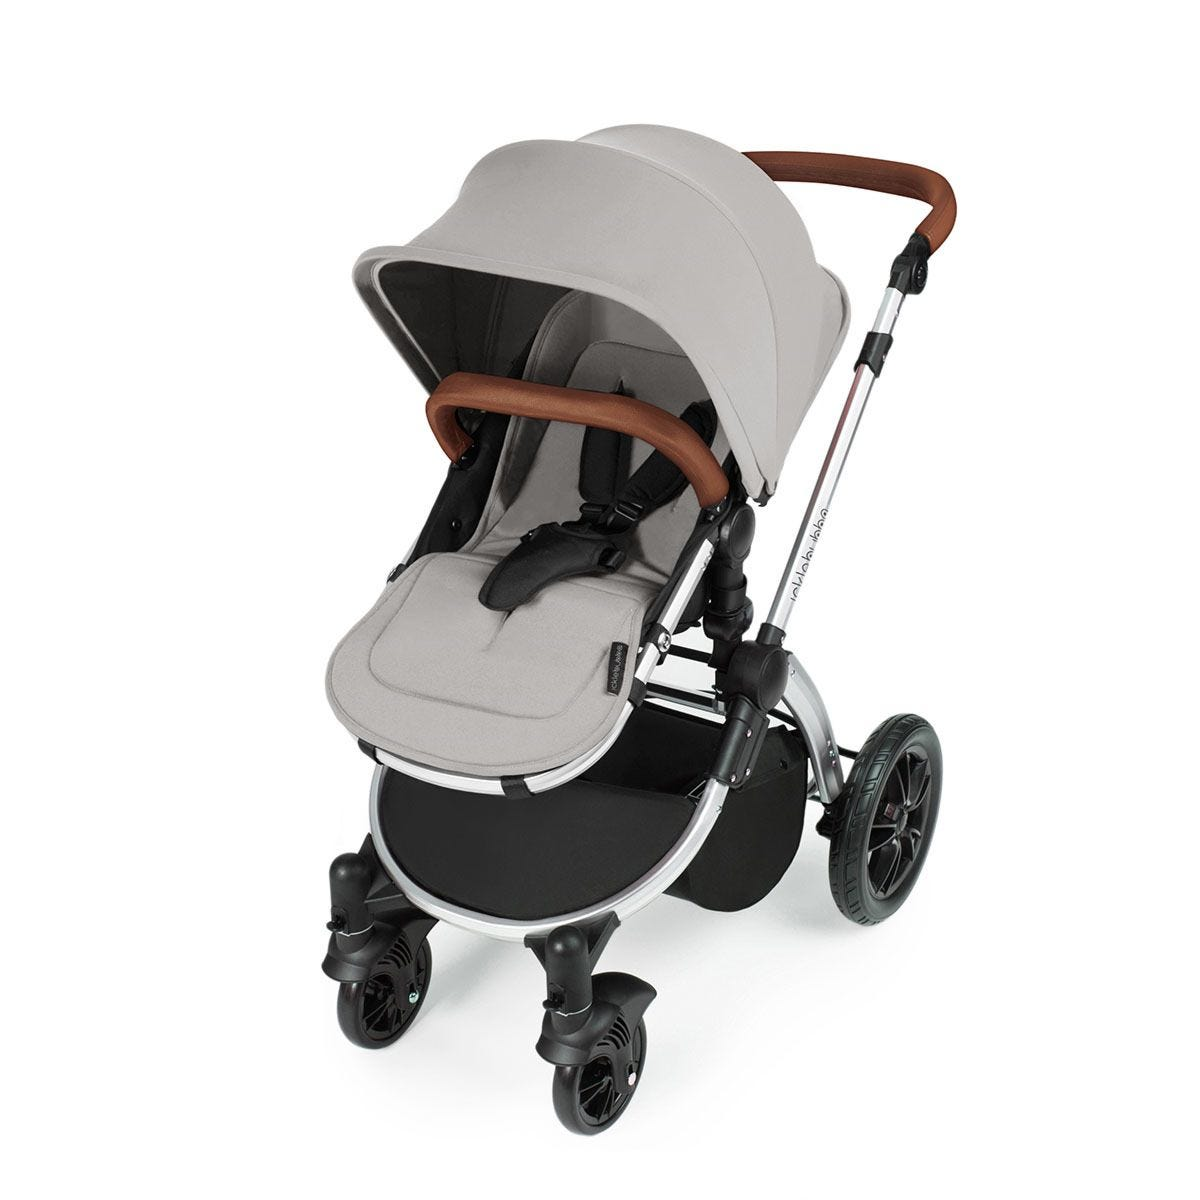 Ickle Bubba Stomp V3 All in One Travel System with Isofix Base - Silver on Silver with Tan Handles